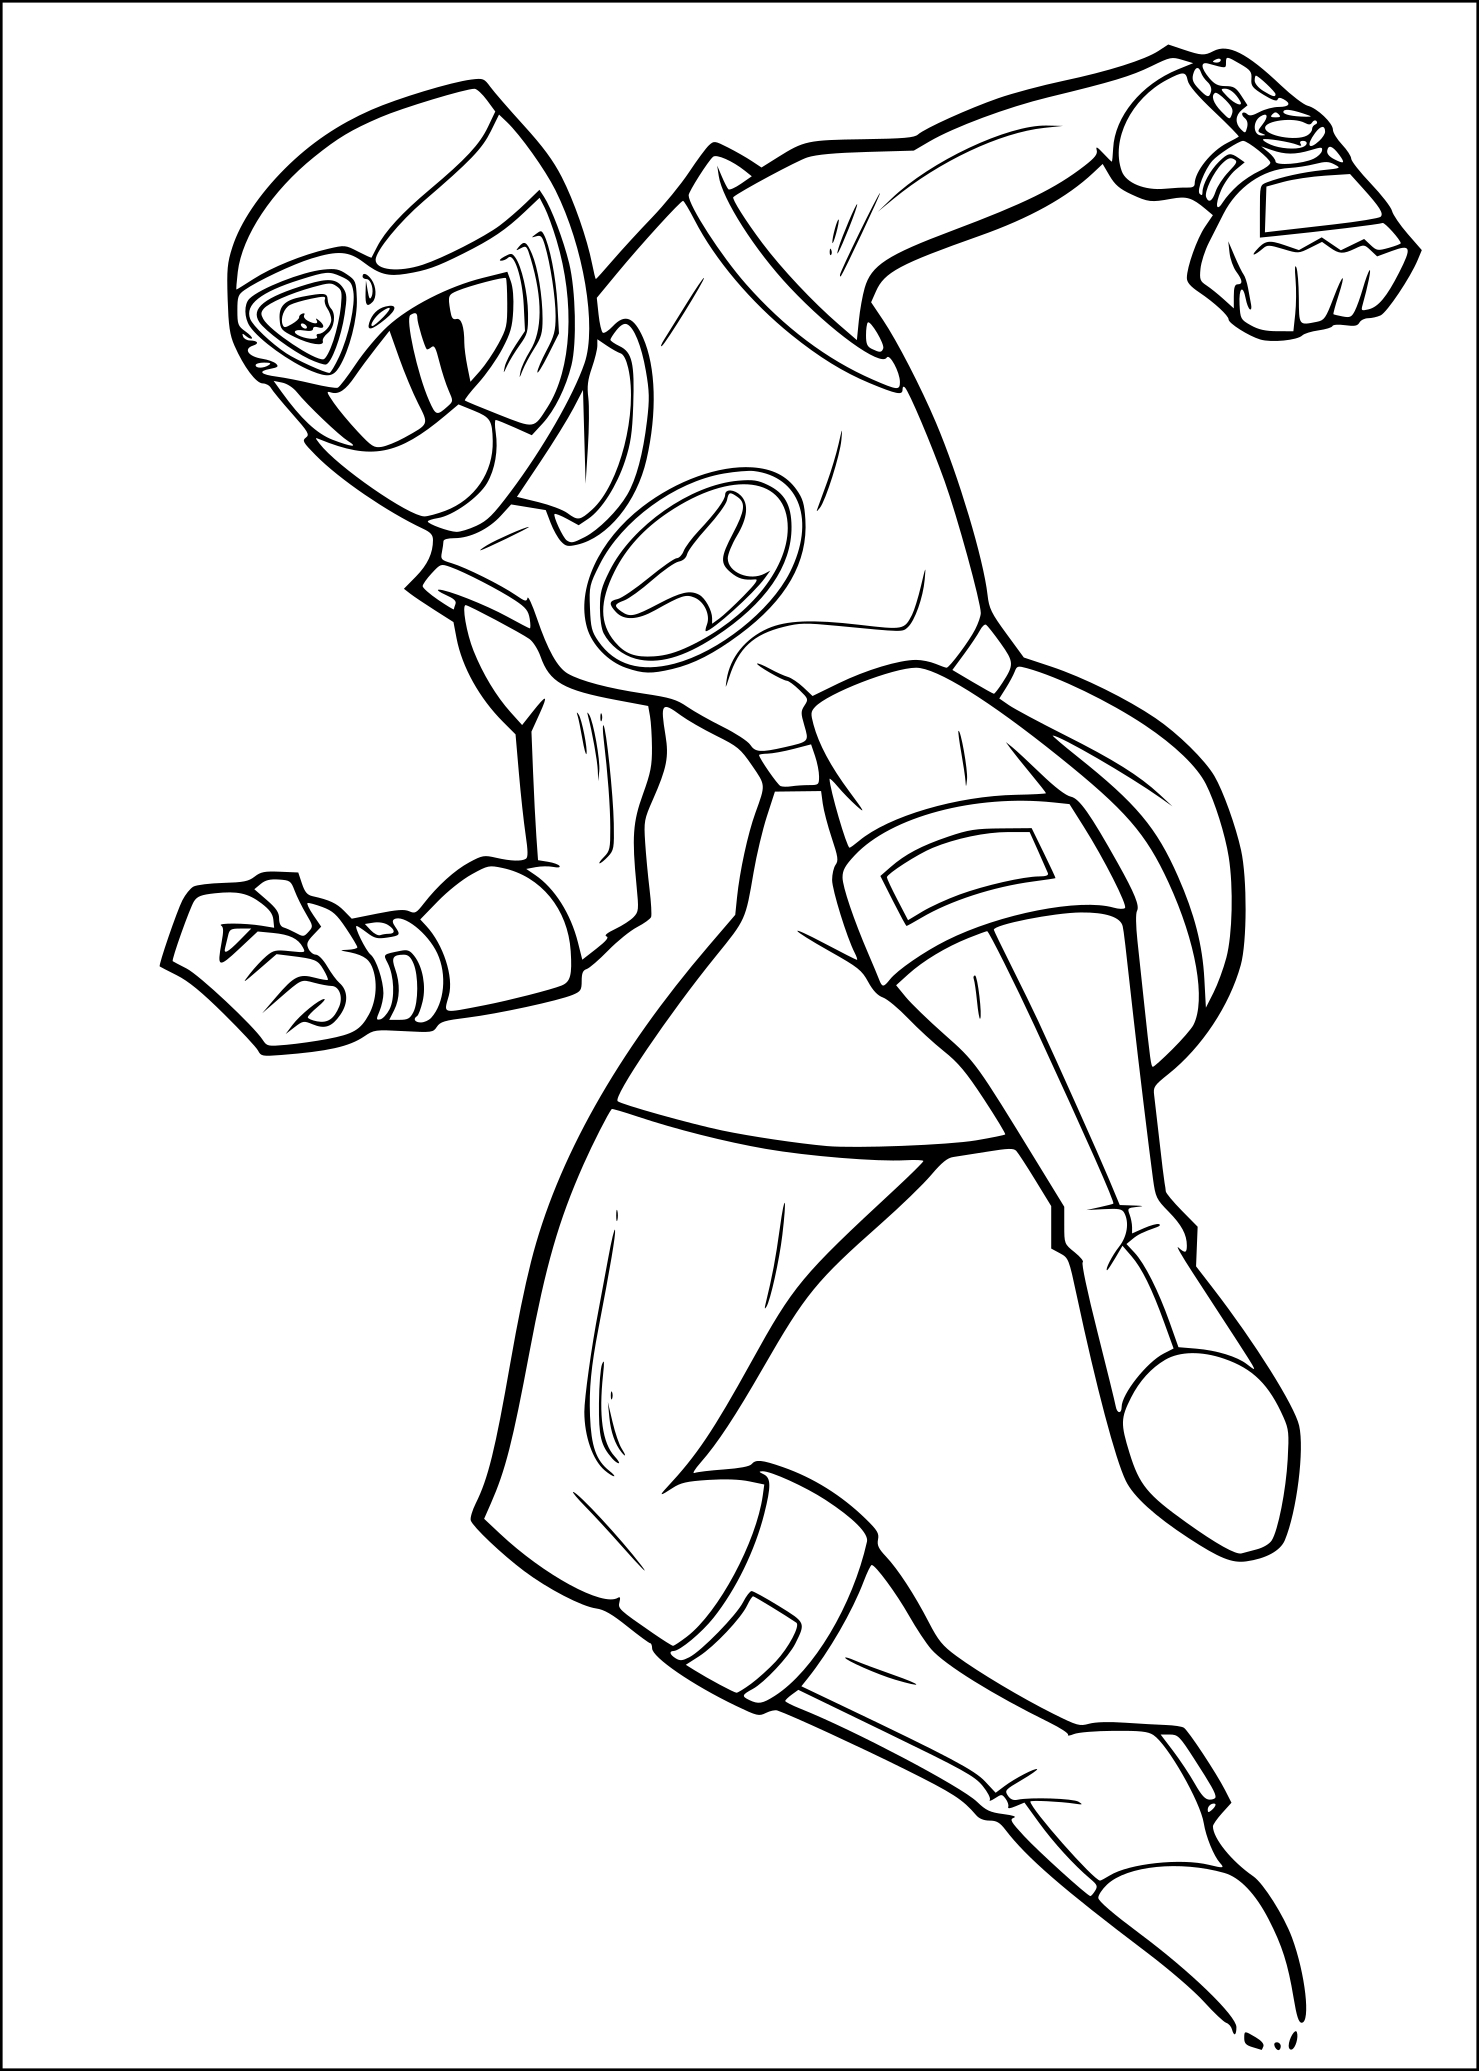 rose coloring pages - coloriagepowerrangersrose